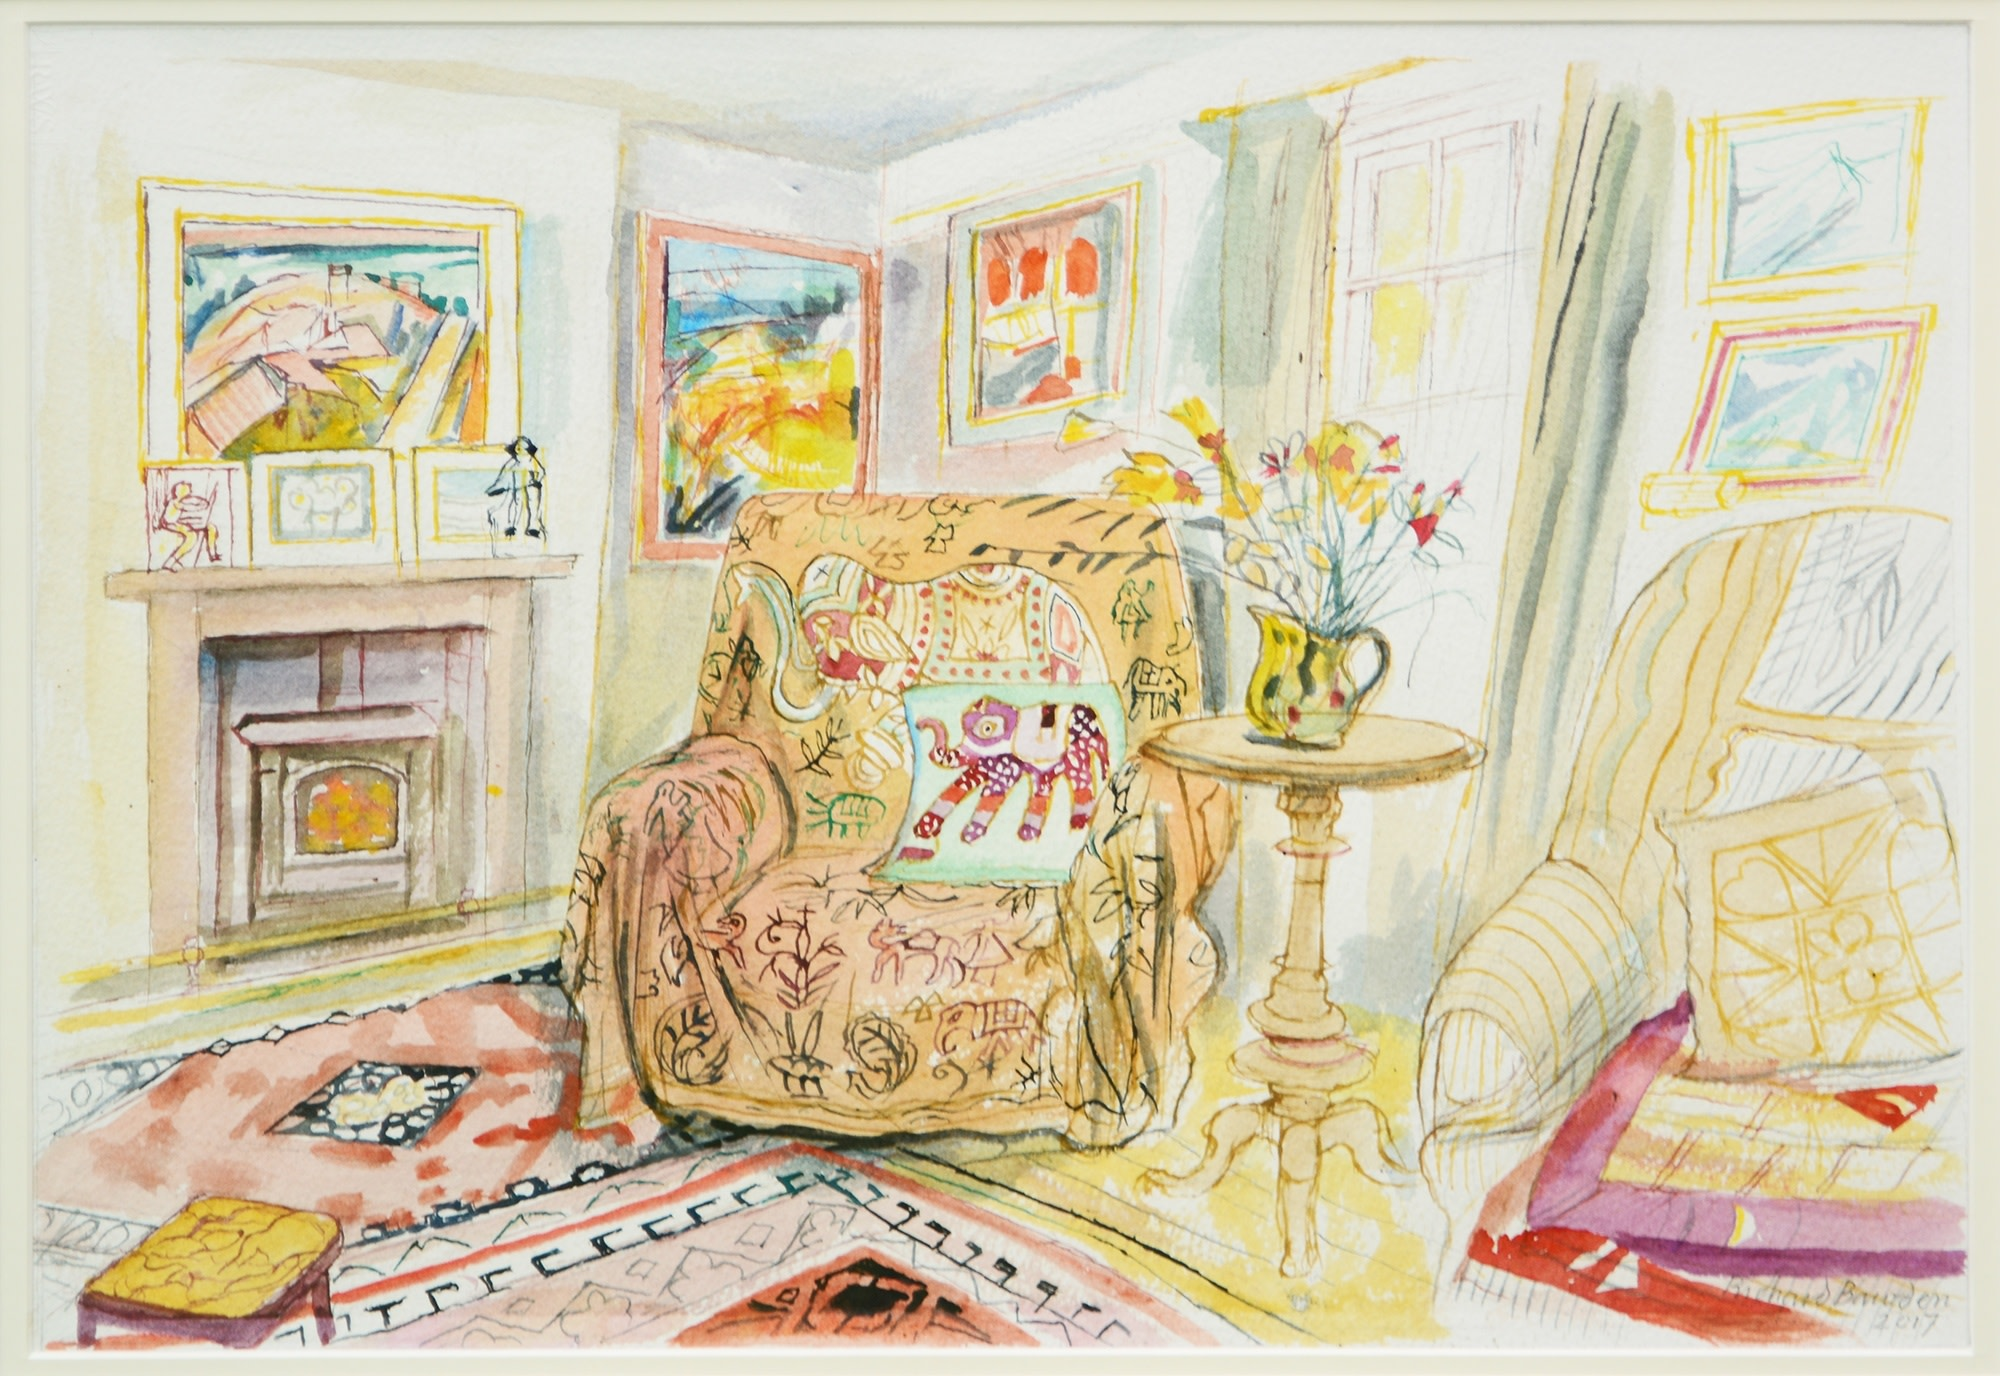 <span class=&#34;link fancybox-details-link&#34;><a href=&#34;/artists/38-richard-bawden/works/10685-richard-bawden-the-elephant-chair/&#34;>View Detail Page</a></span><div class=&#34;artist&#34;><span class=&#34;artist&#34;><strong>Richard Bawden</strong></span></div>